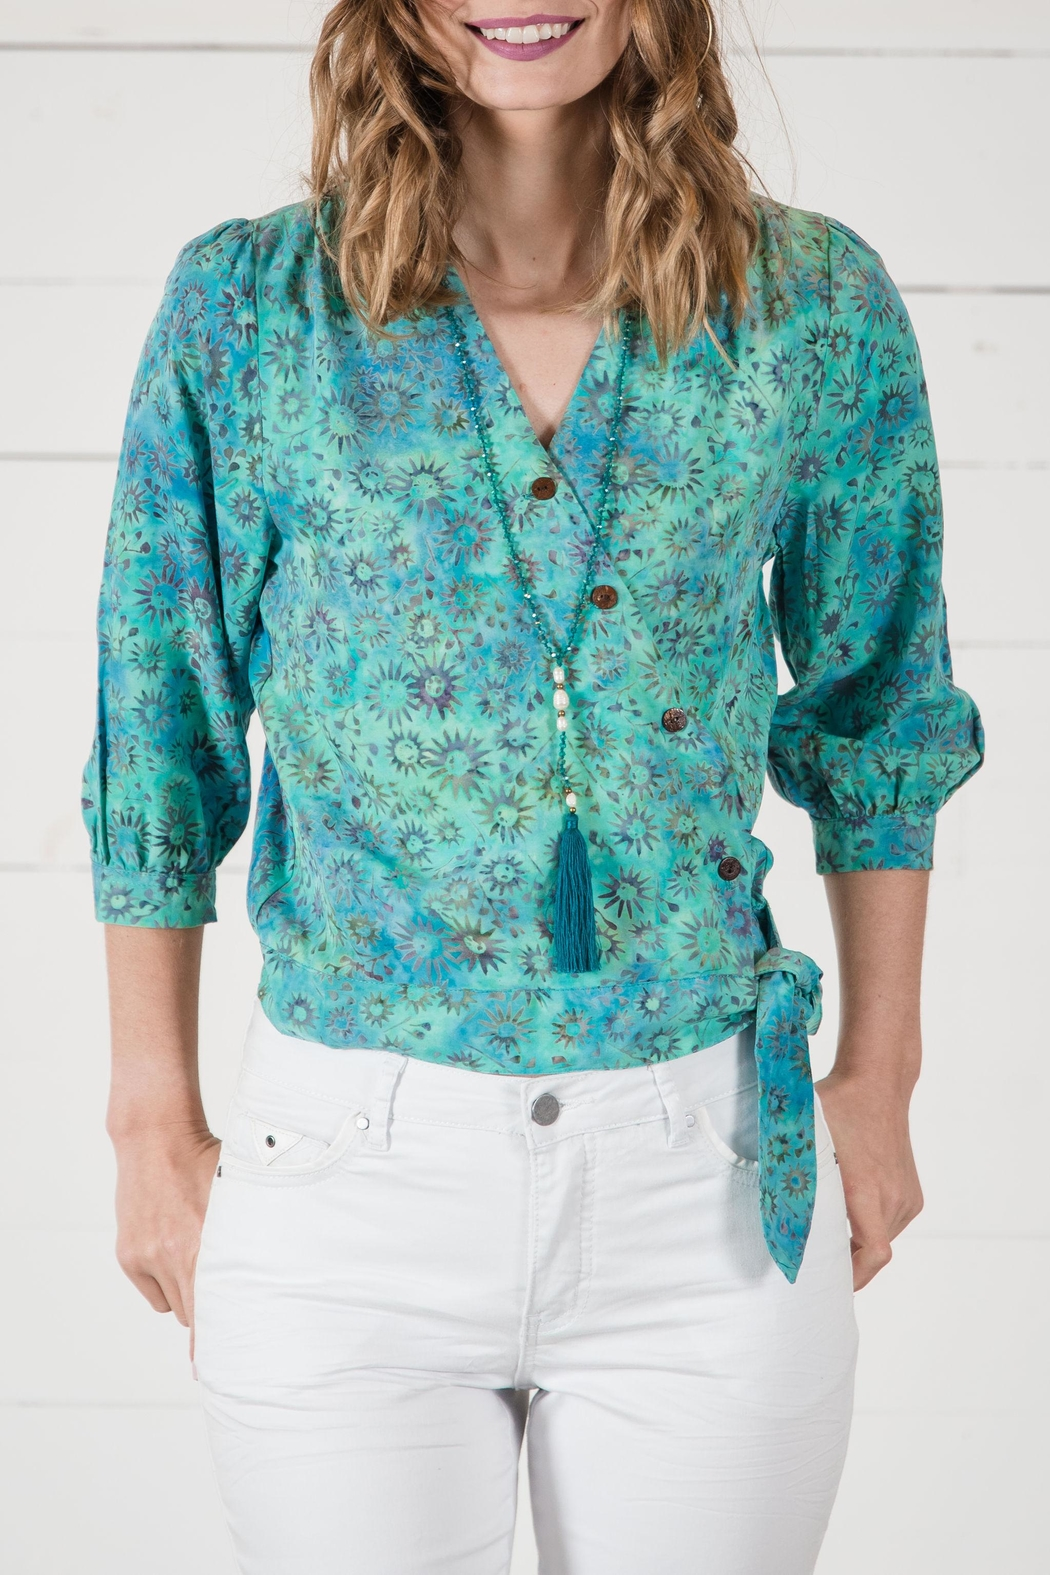 Go Fish Clothing Crop Wrap Blouse - Main Image